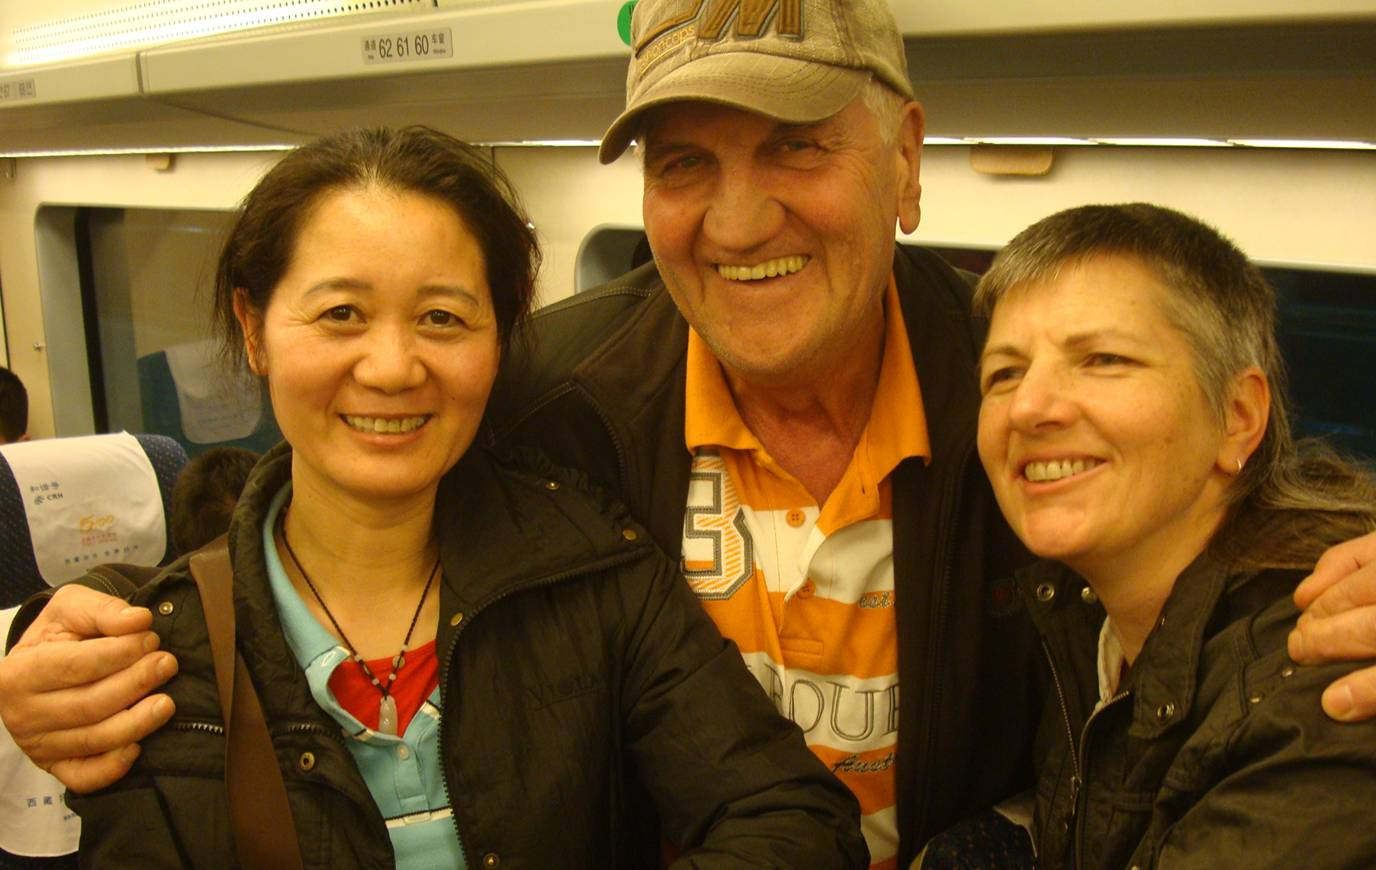 Picture:  Friendly travelling companions on the train from Sanya back to Haikou.  Hainan Island, China